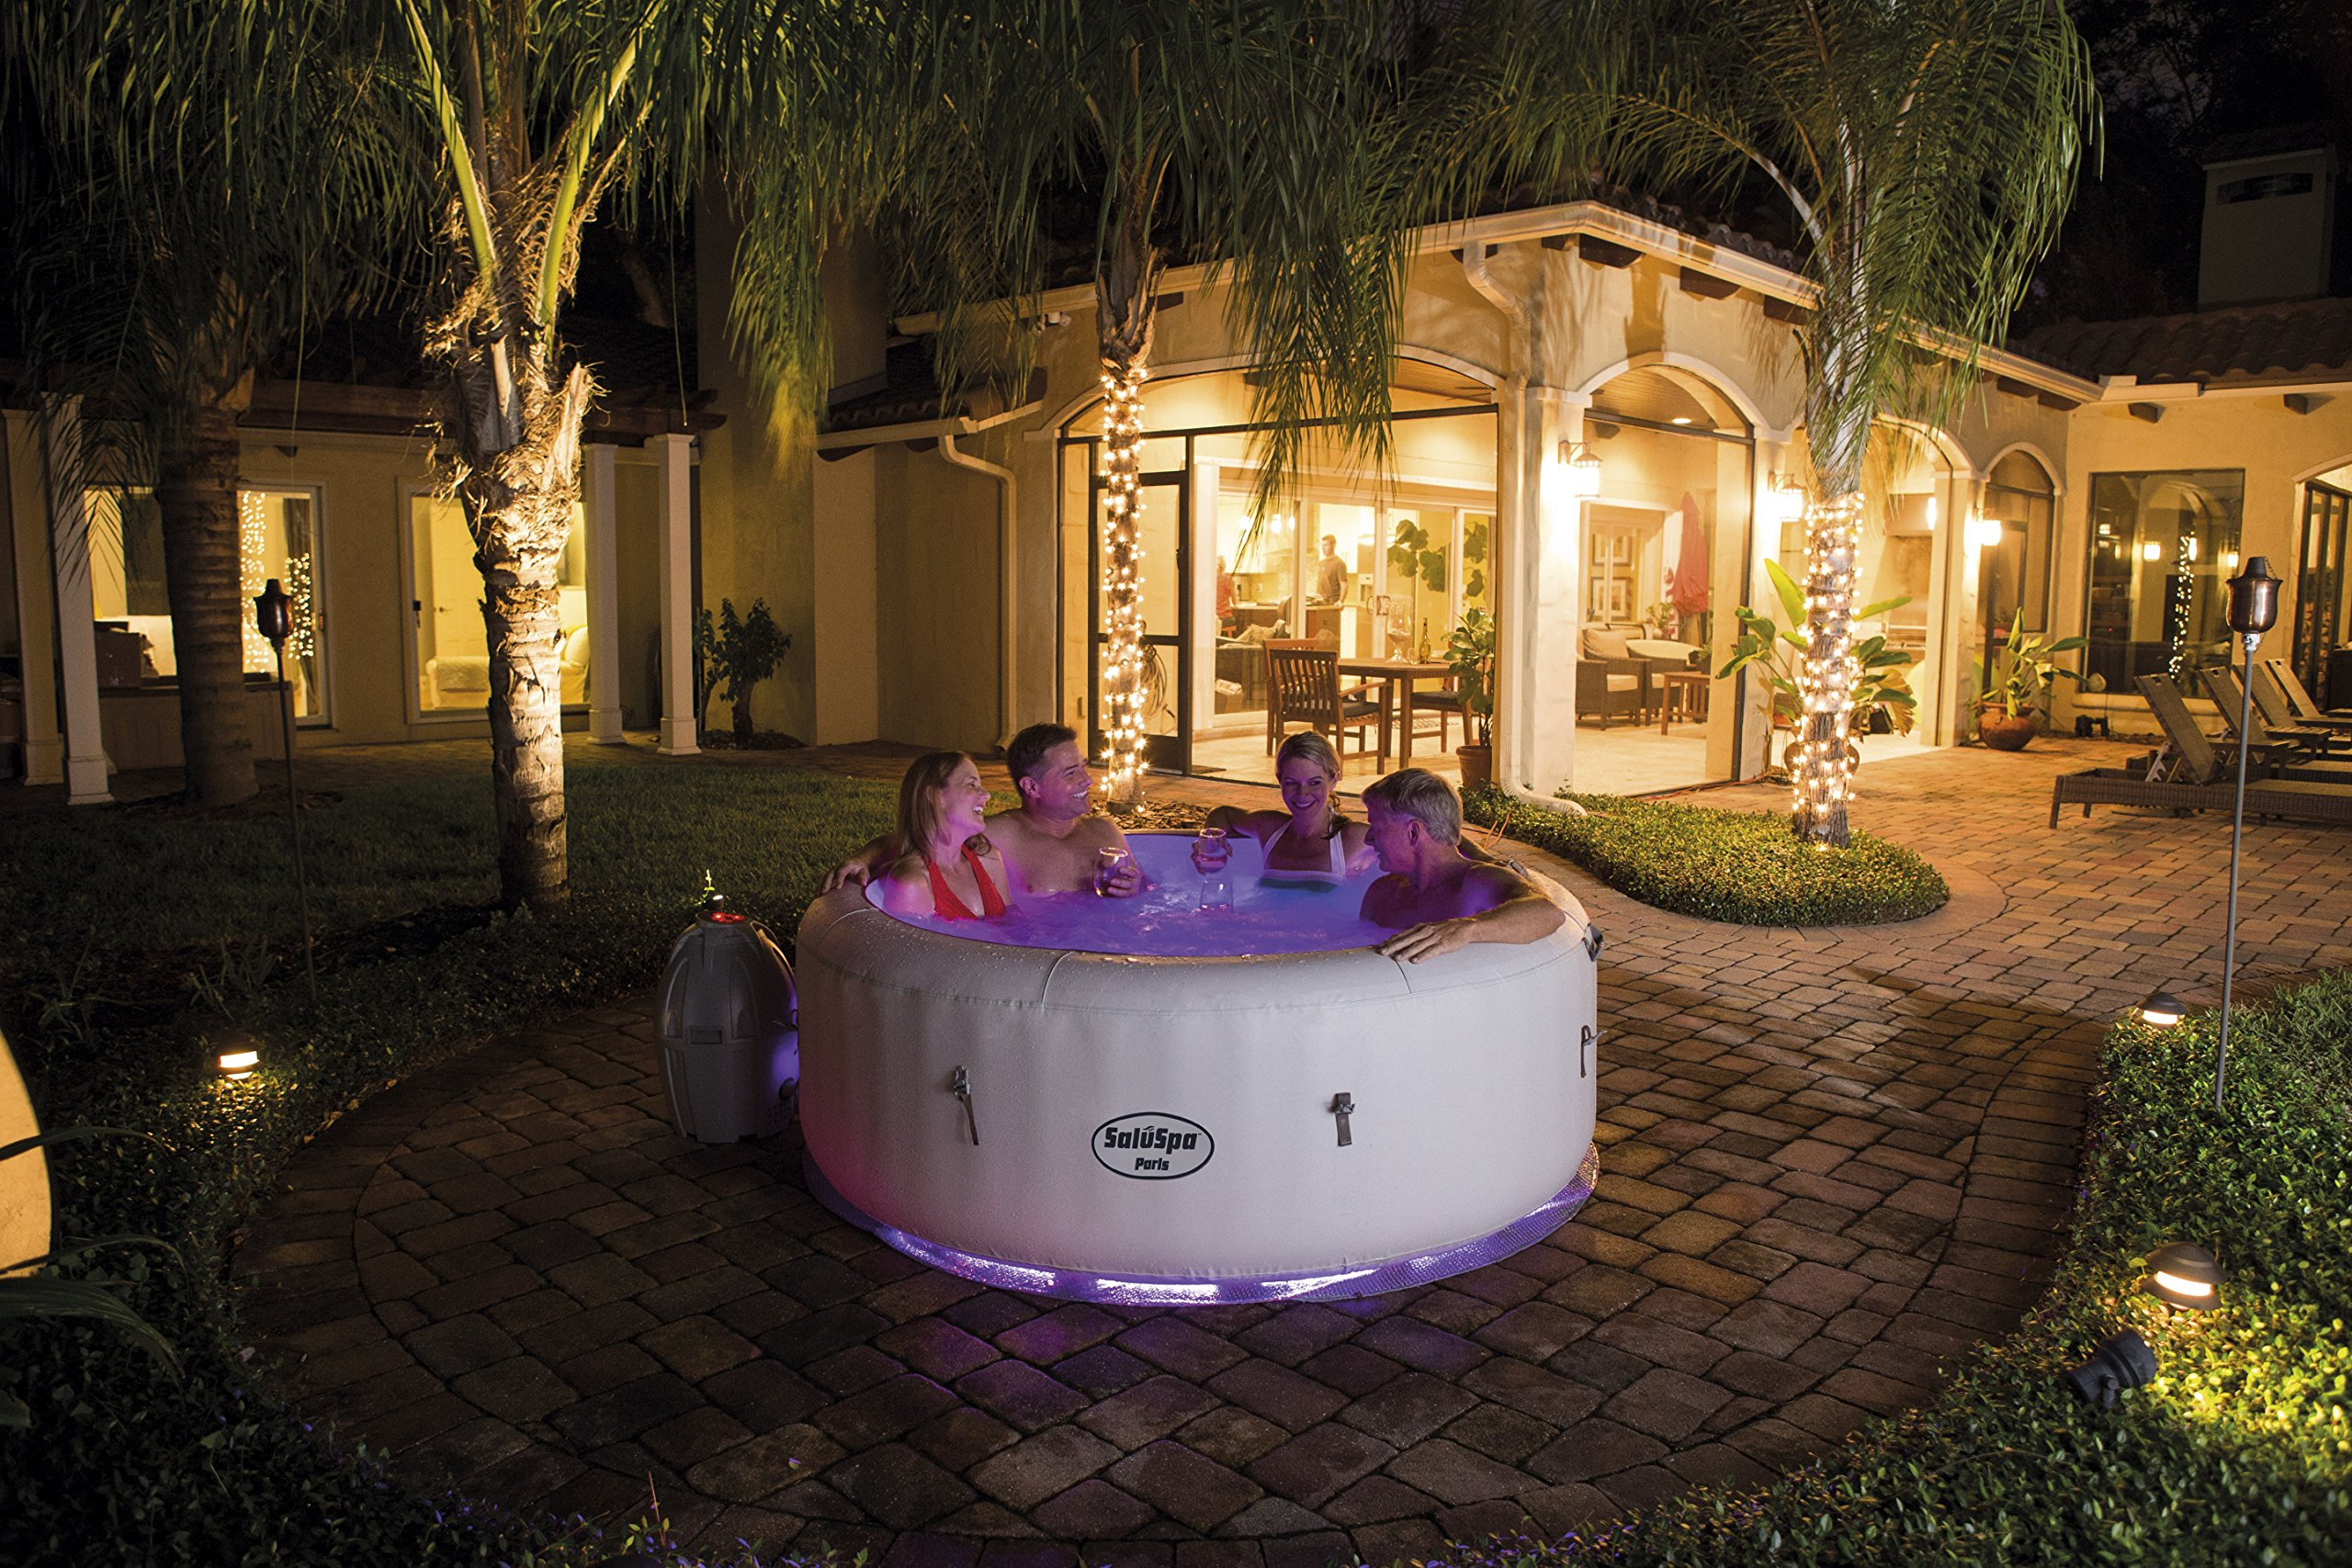 tub purespa deals intex and adults inflatable with above tubs sale portable kotulas massage favorites for accommodates hot plus bubble